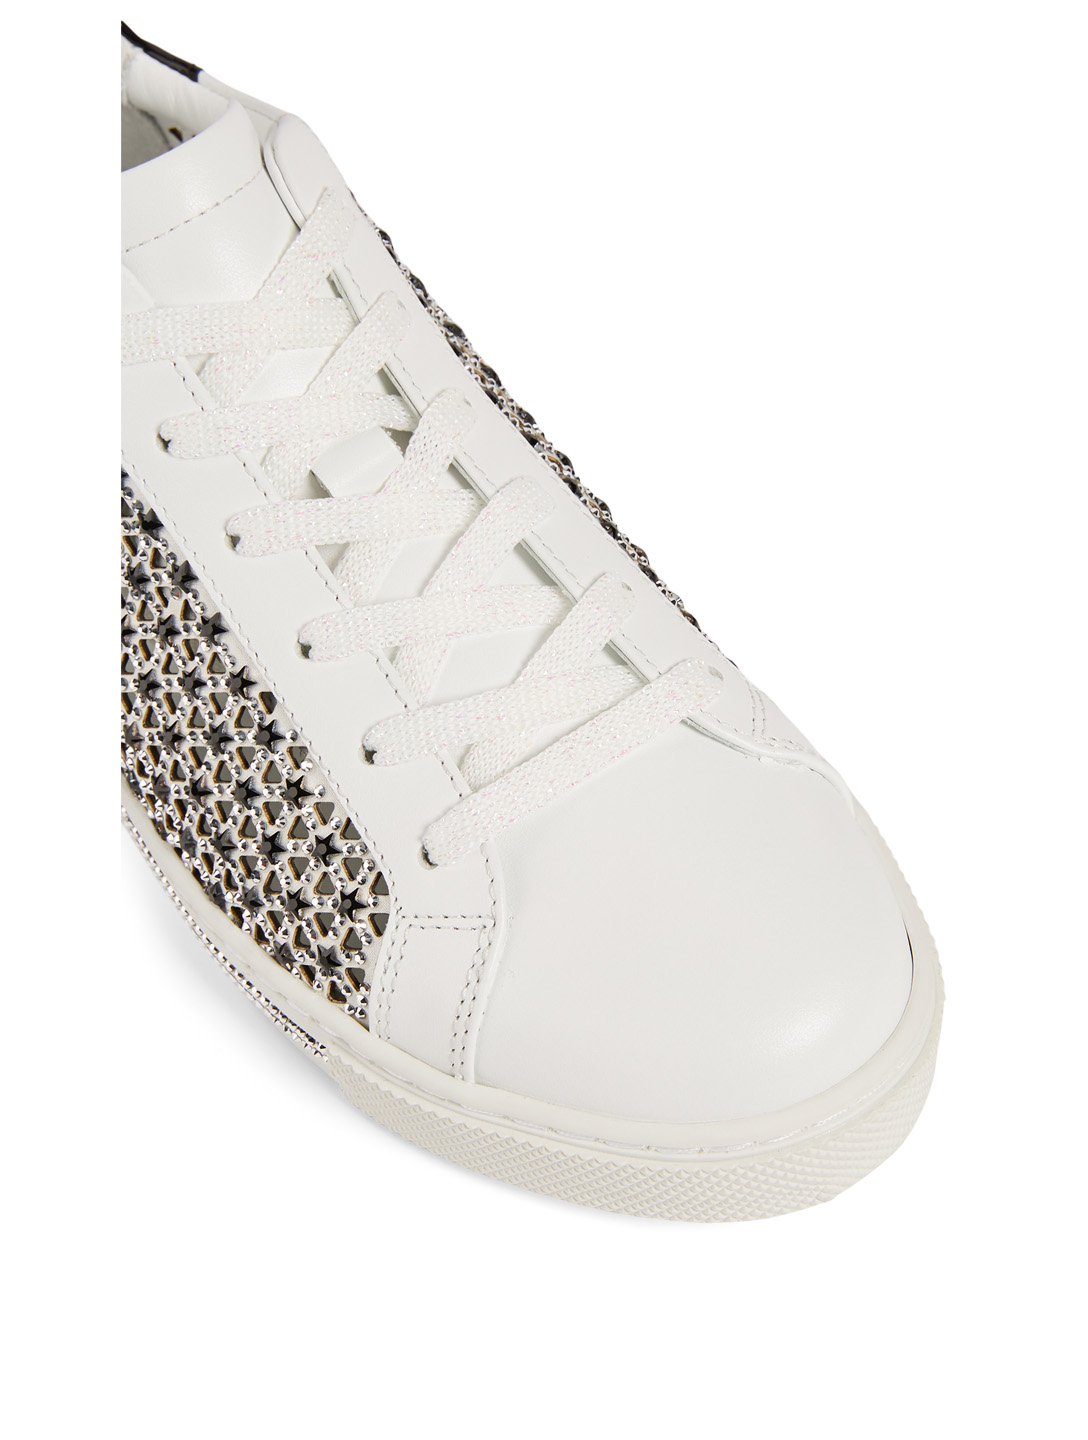 RENE CAOVILLA Xtra Stelina Crystal Star Leather Sneakers Women's White